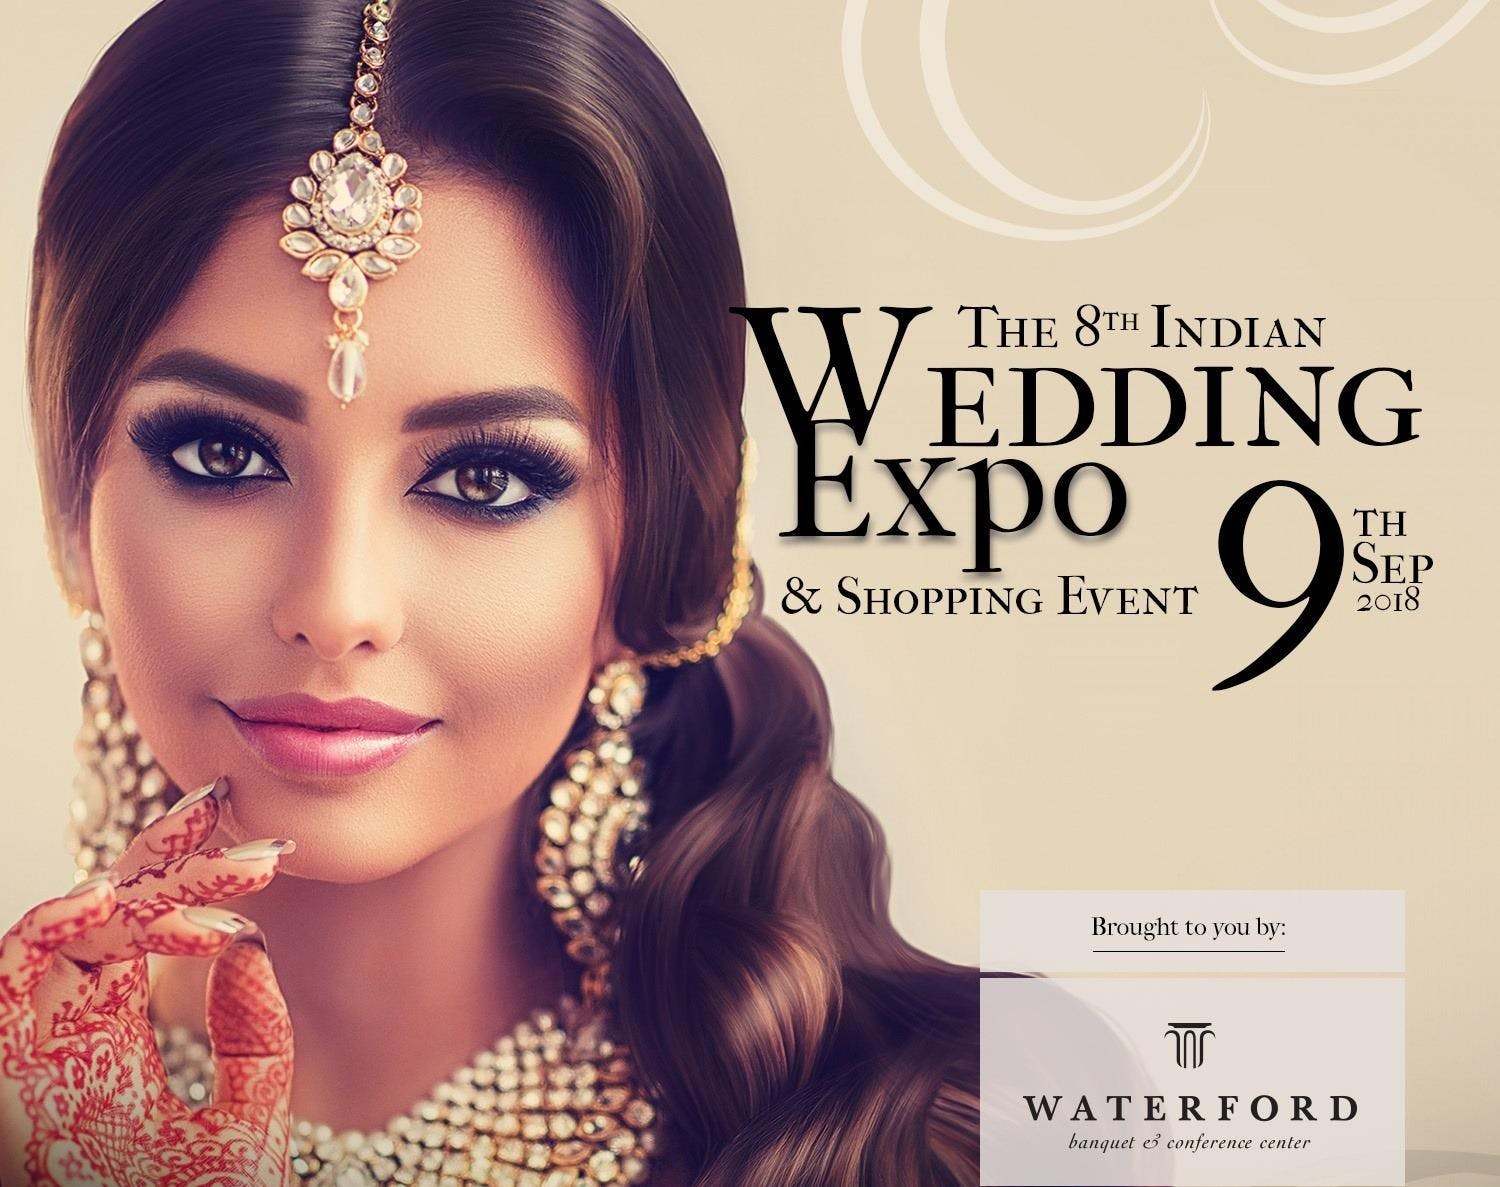 The 8th Indian Wedding Expo Ping Event